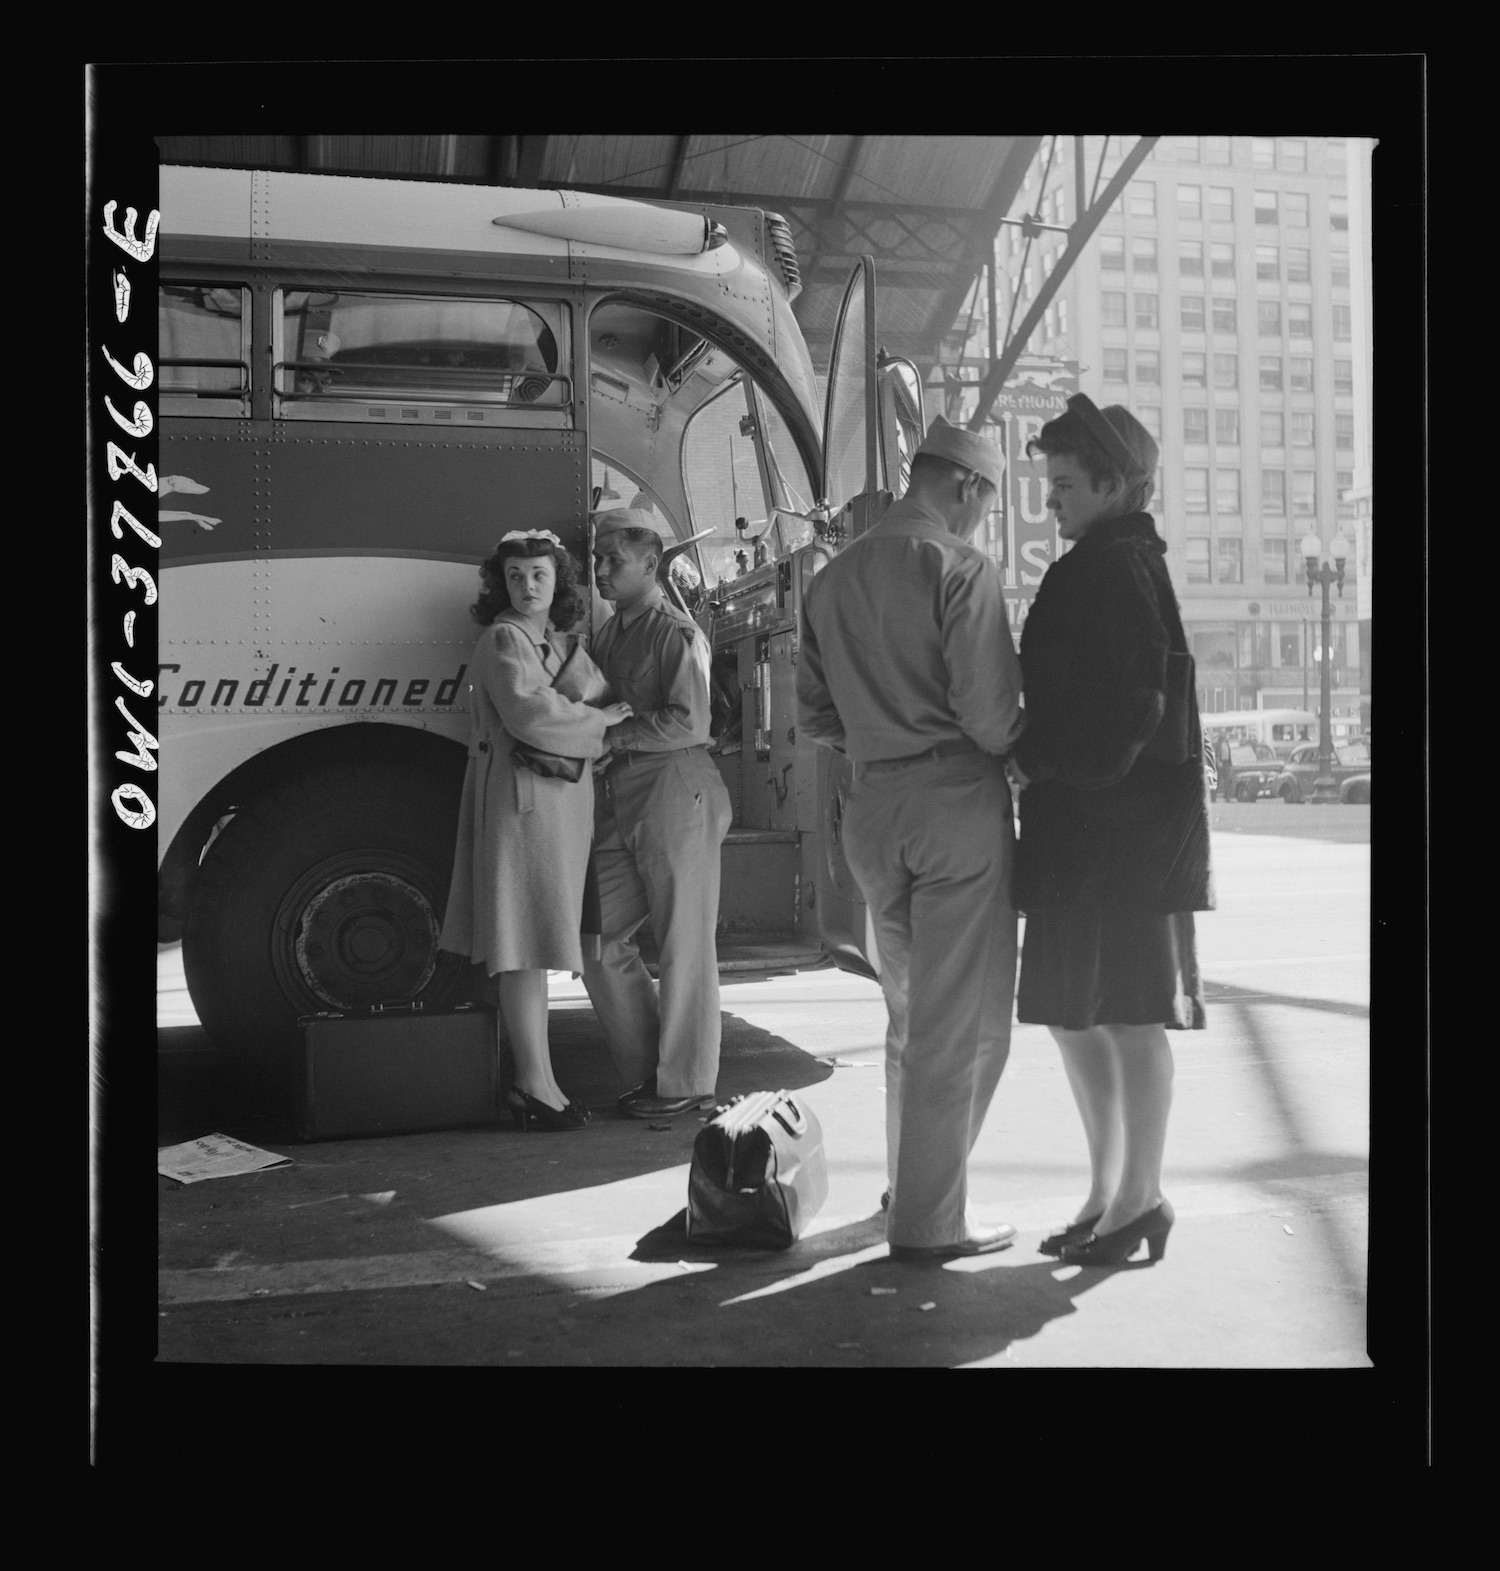 A soldier and a girl saying goodbye at the Greyhound bus station, Indianapolis (1943). Image via Library of Congress.